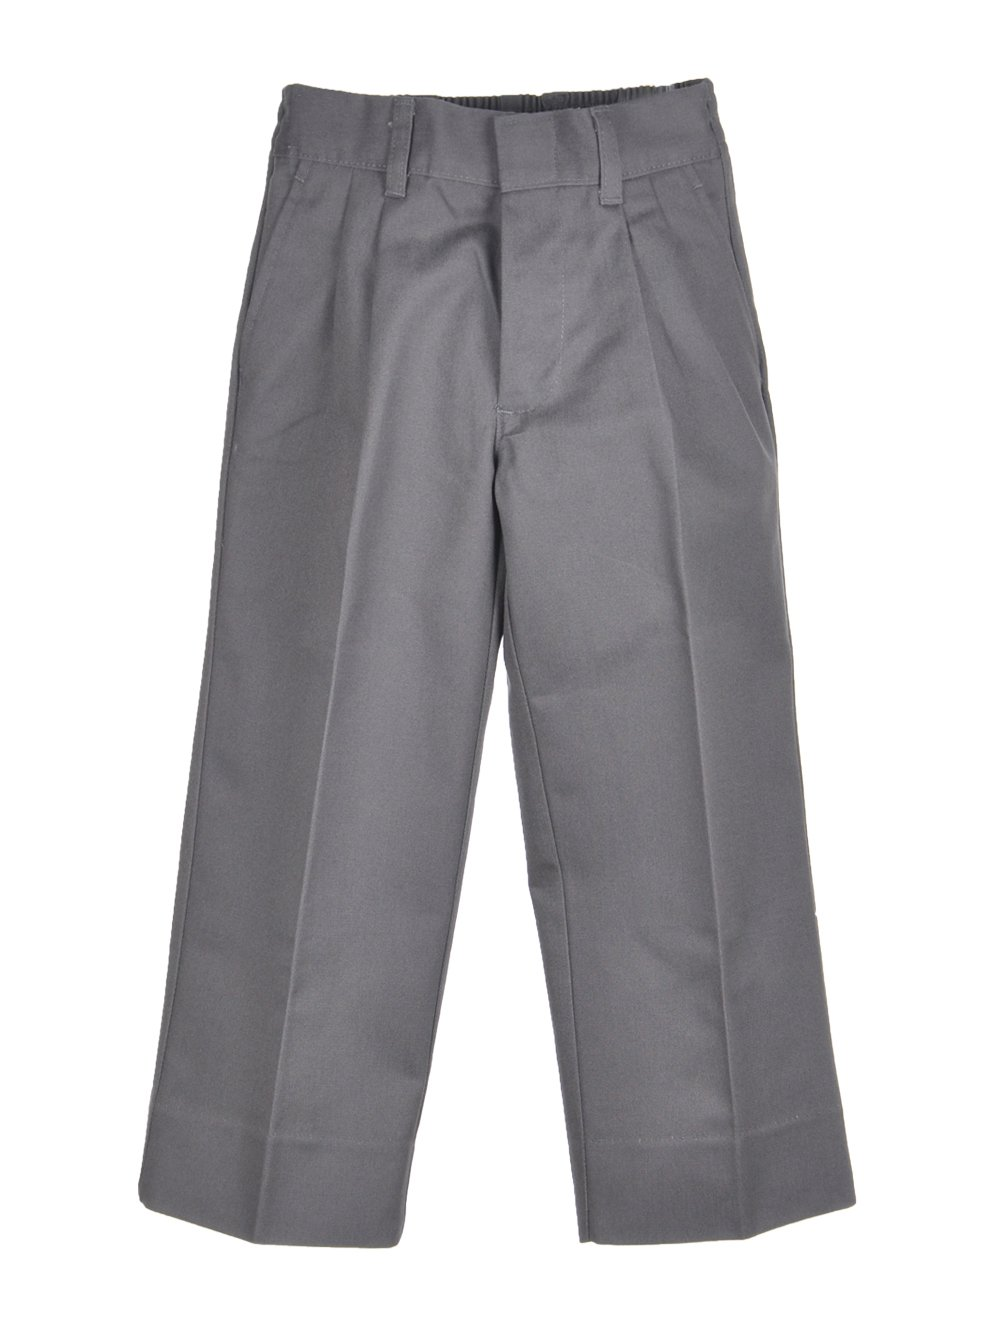 Cookie's Brand Little Boys' Pleated Pants - gray, 4 by Cookie's Kids (Image #1)